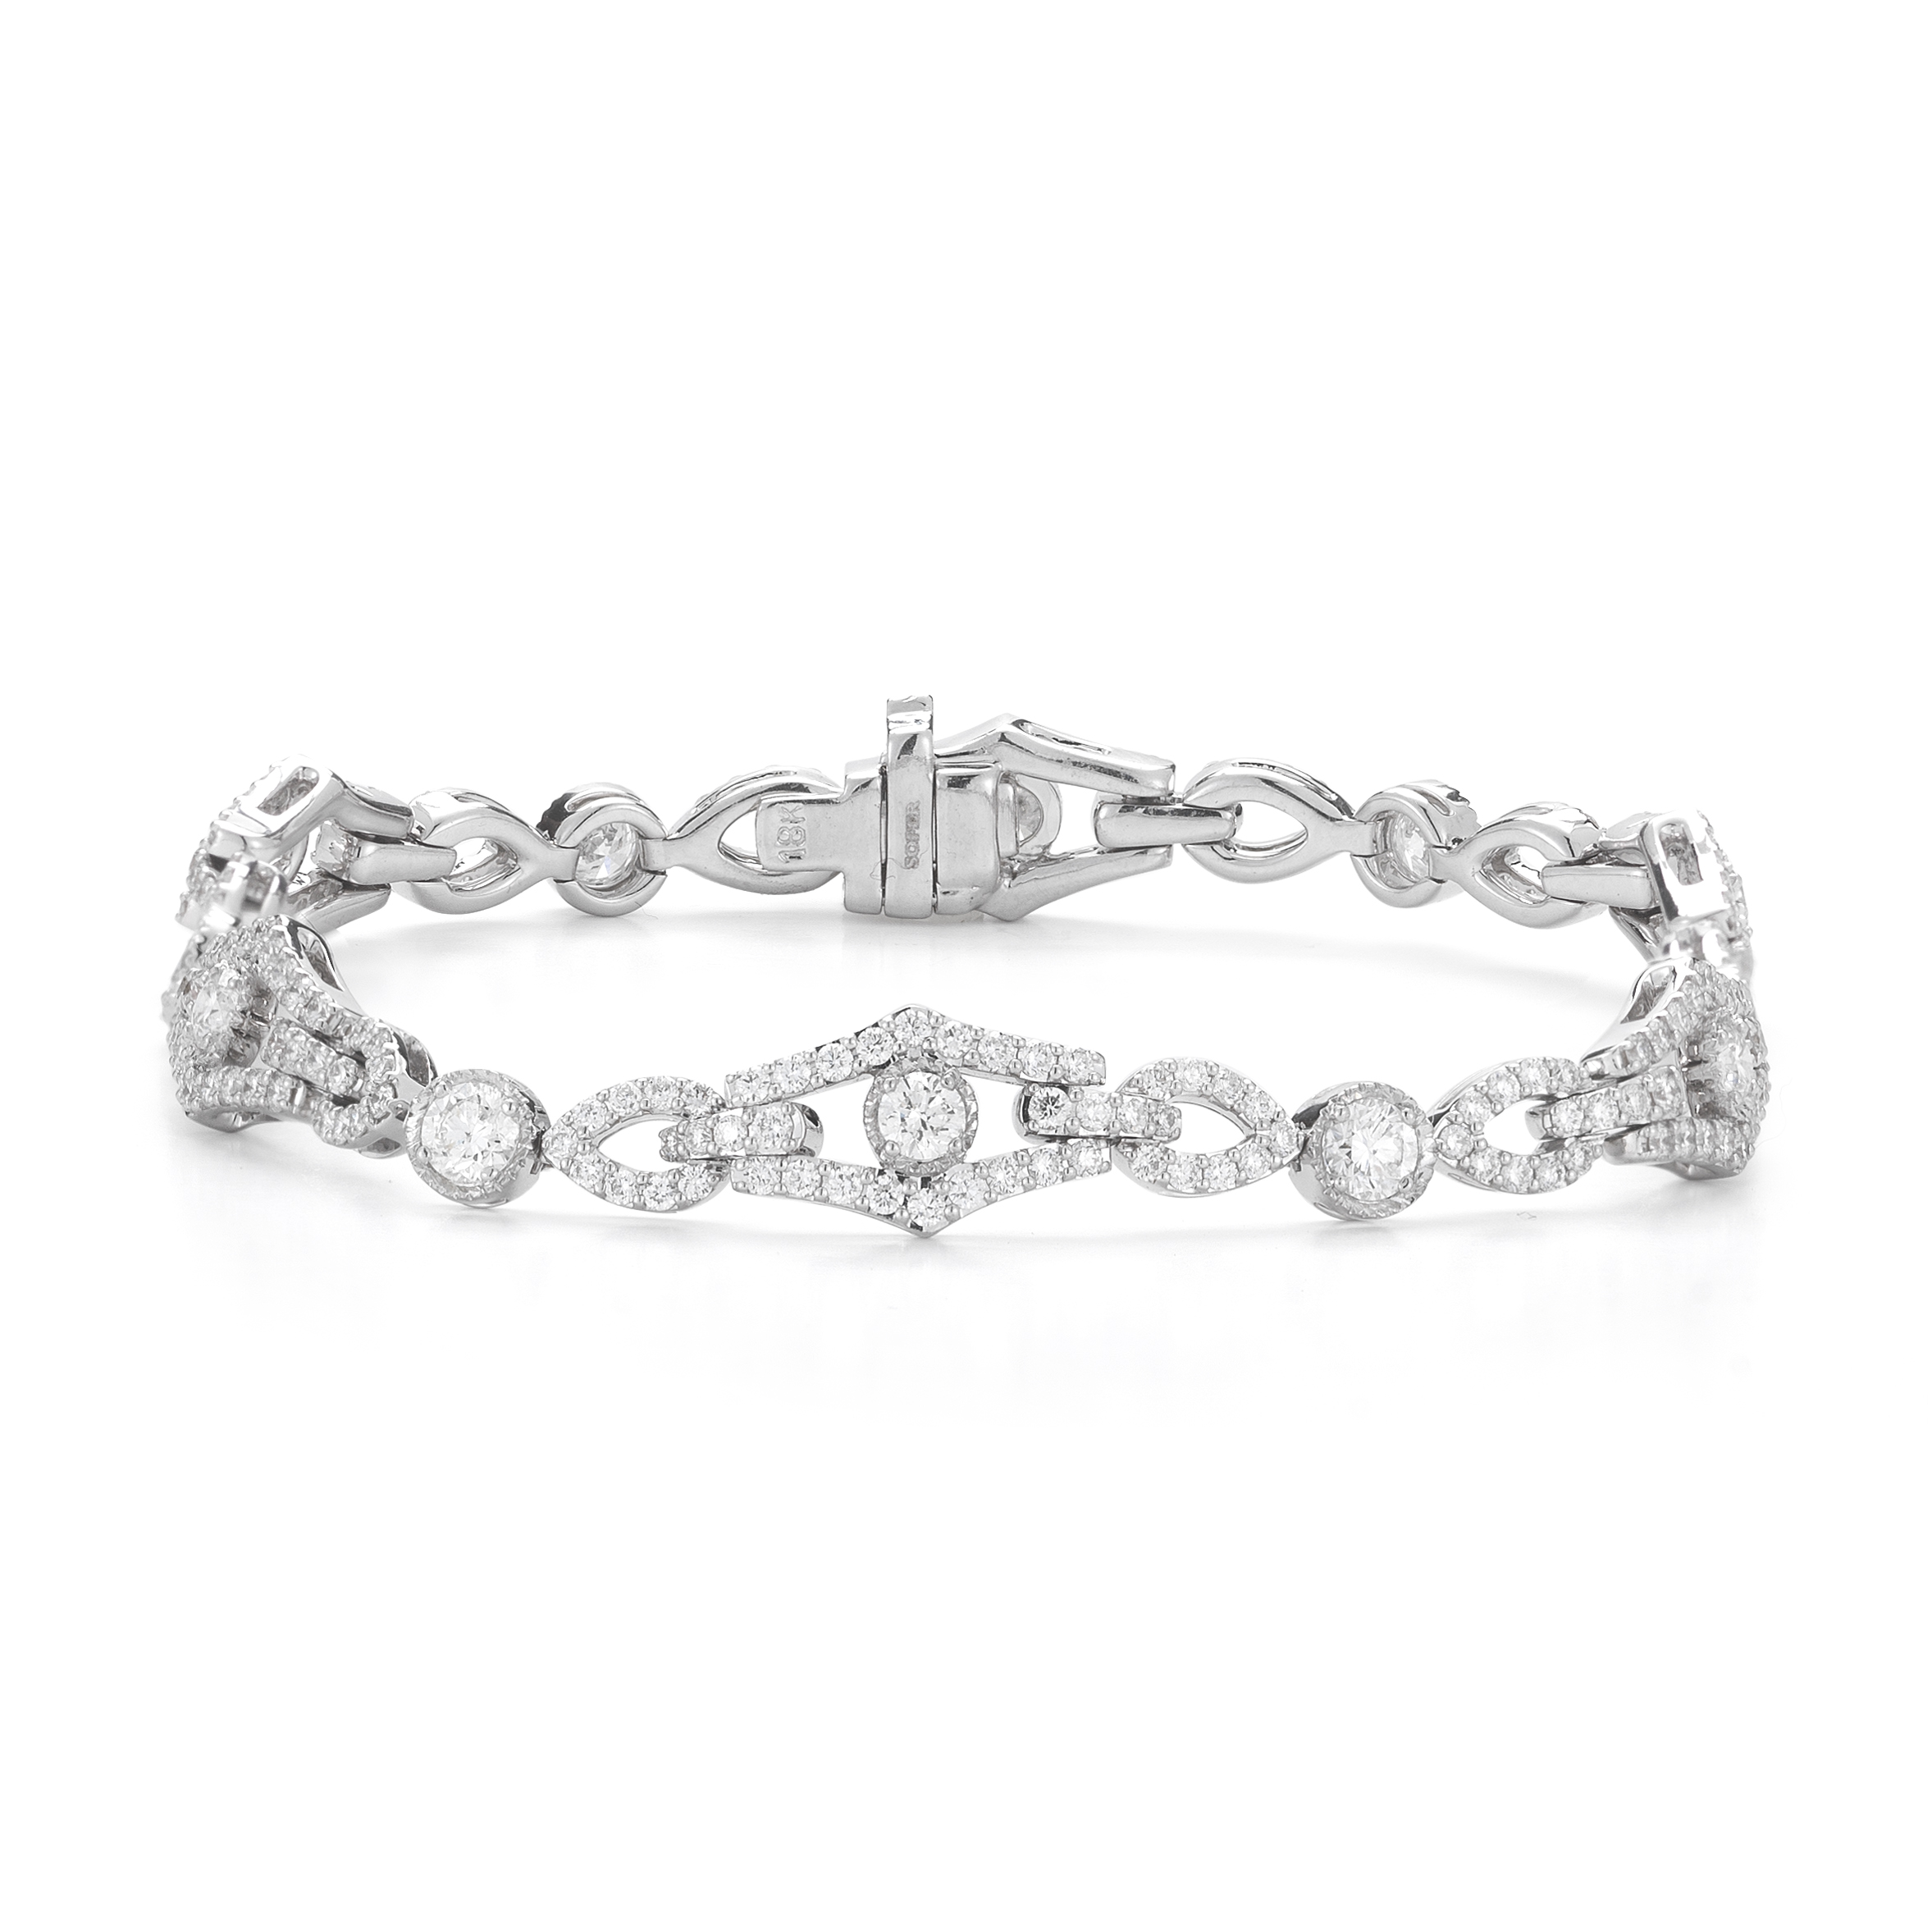 set eternity sterling bezel default silver band rhodium diamond cz round ring plated bracelet alternating